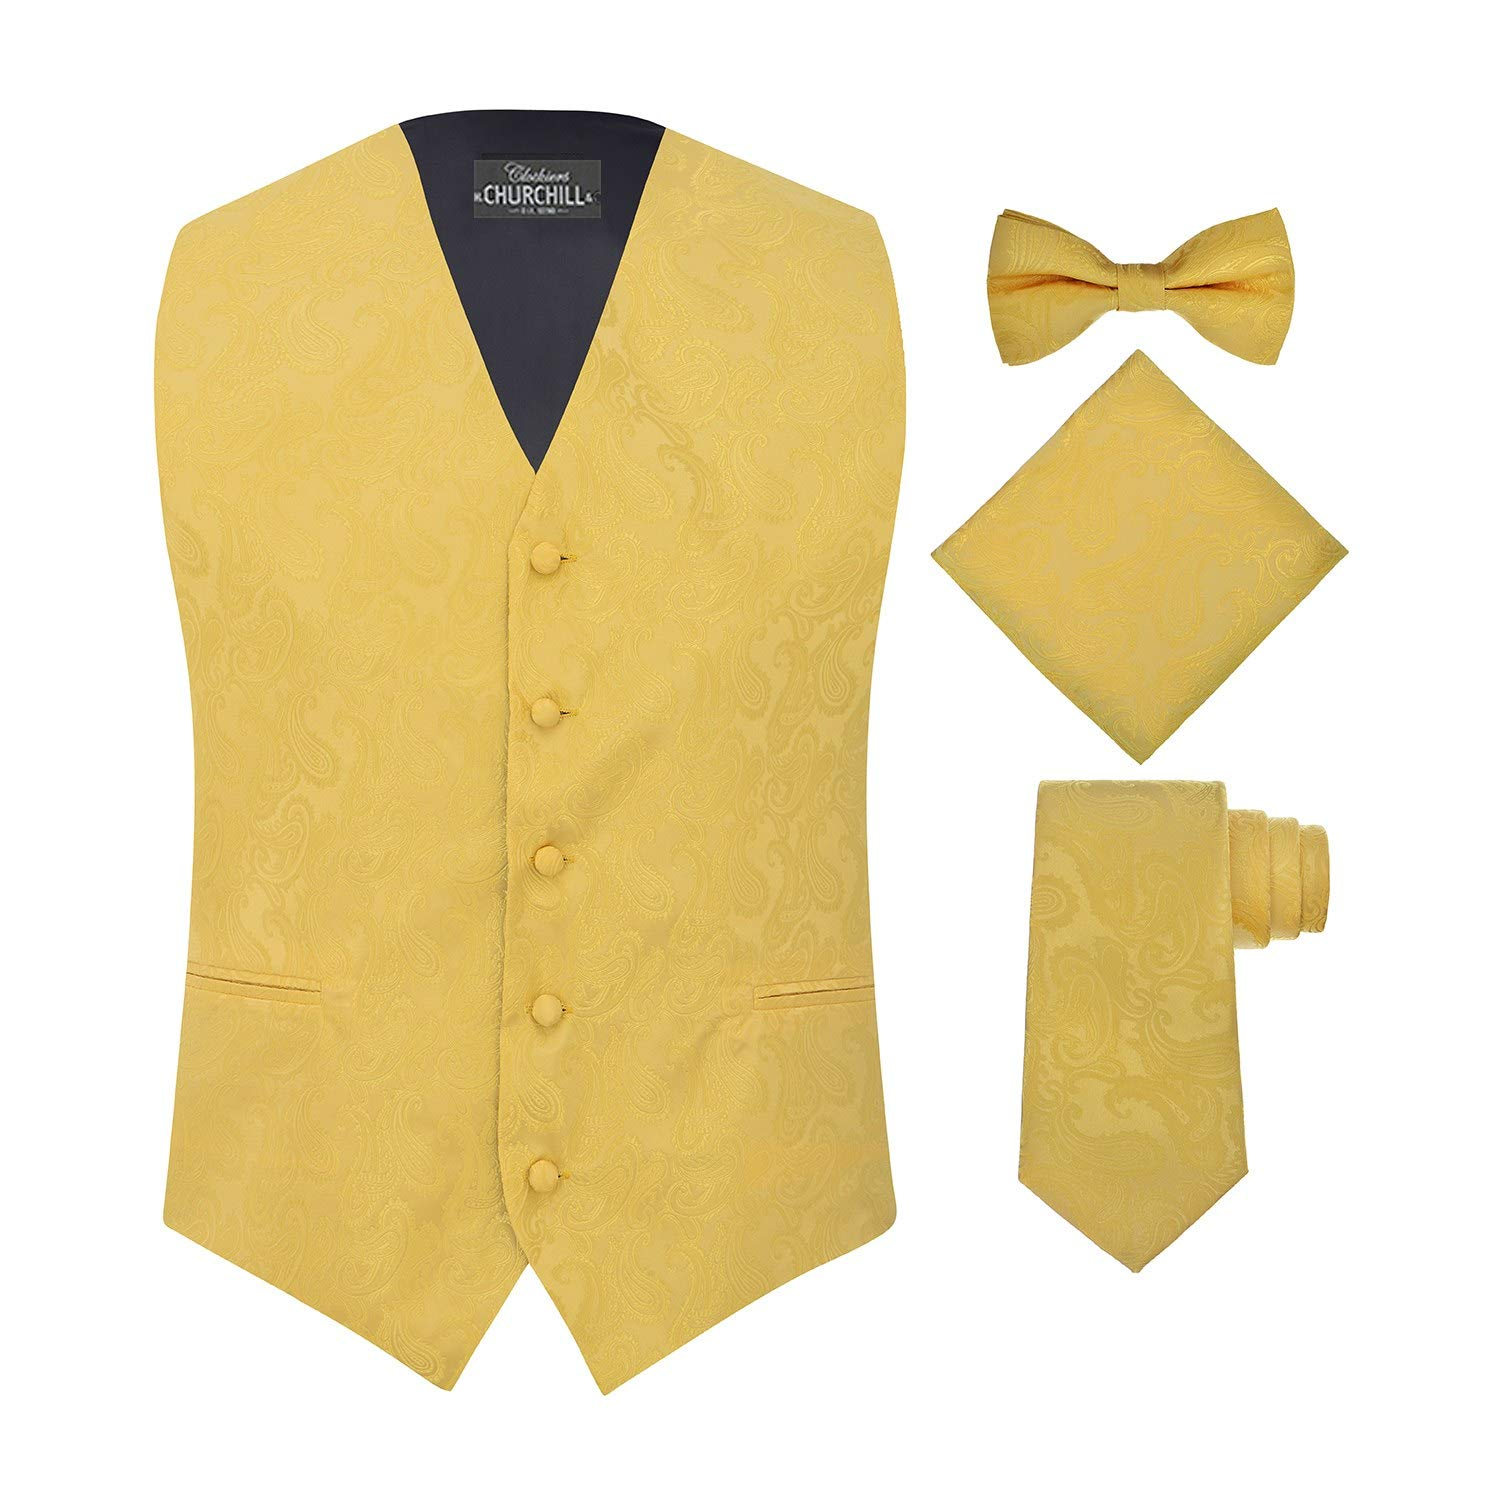 0f03ea0ed3b0 Men's 4 Piece Paisley Vest Set, with Bow Tie, Neck Tie & Pocket Hanky - XL,  Gold at Amazon Men's Clothing store: